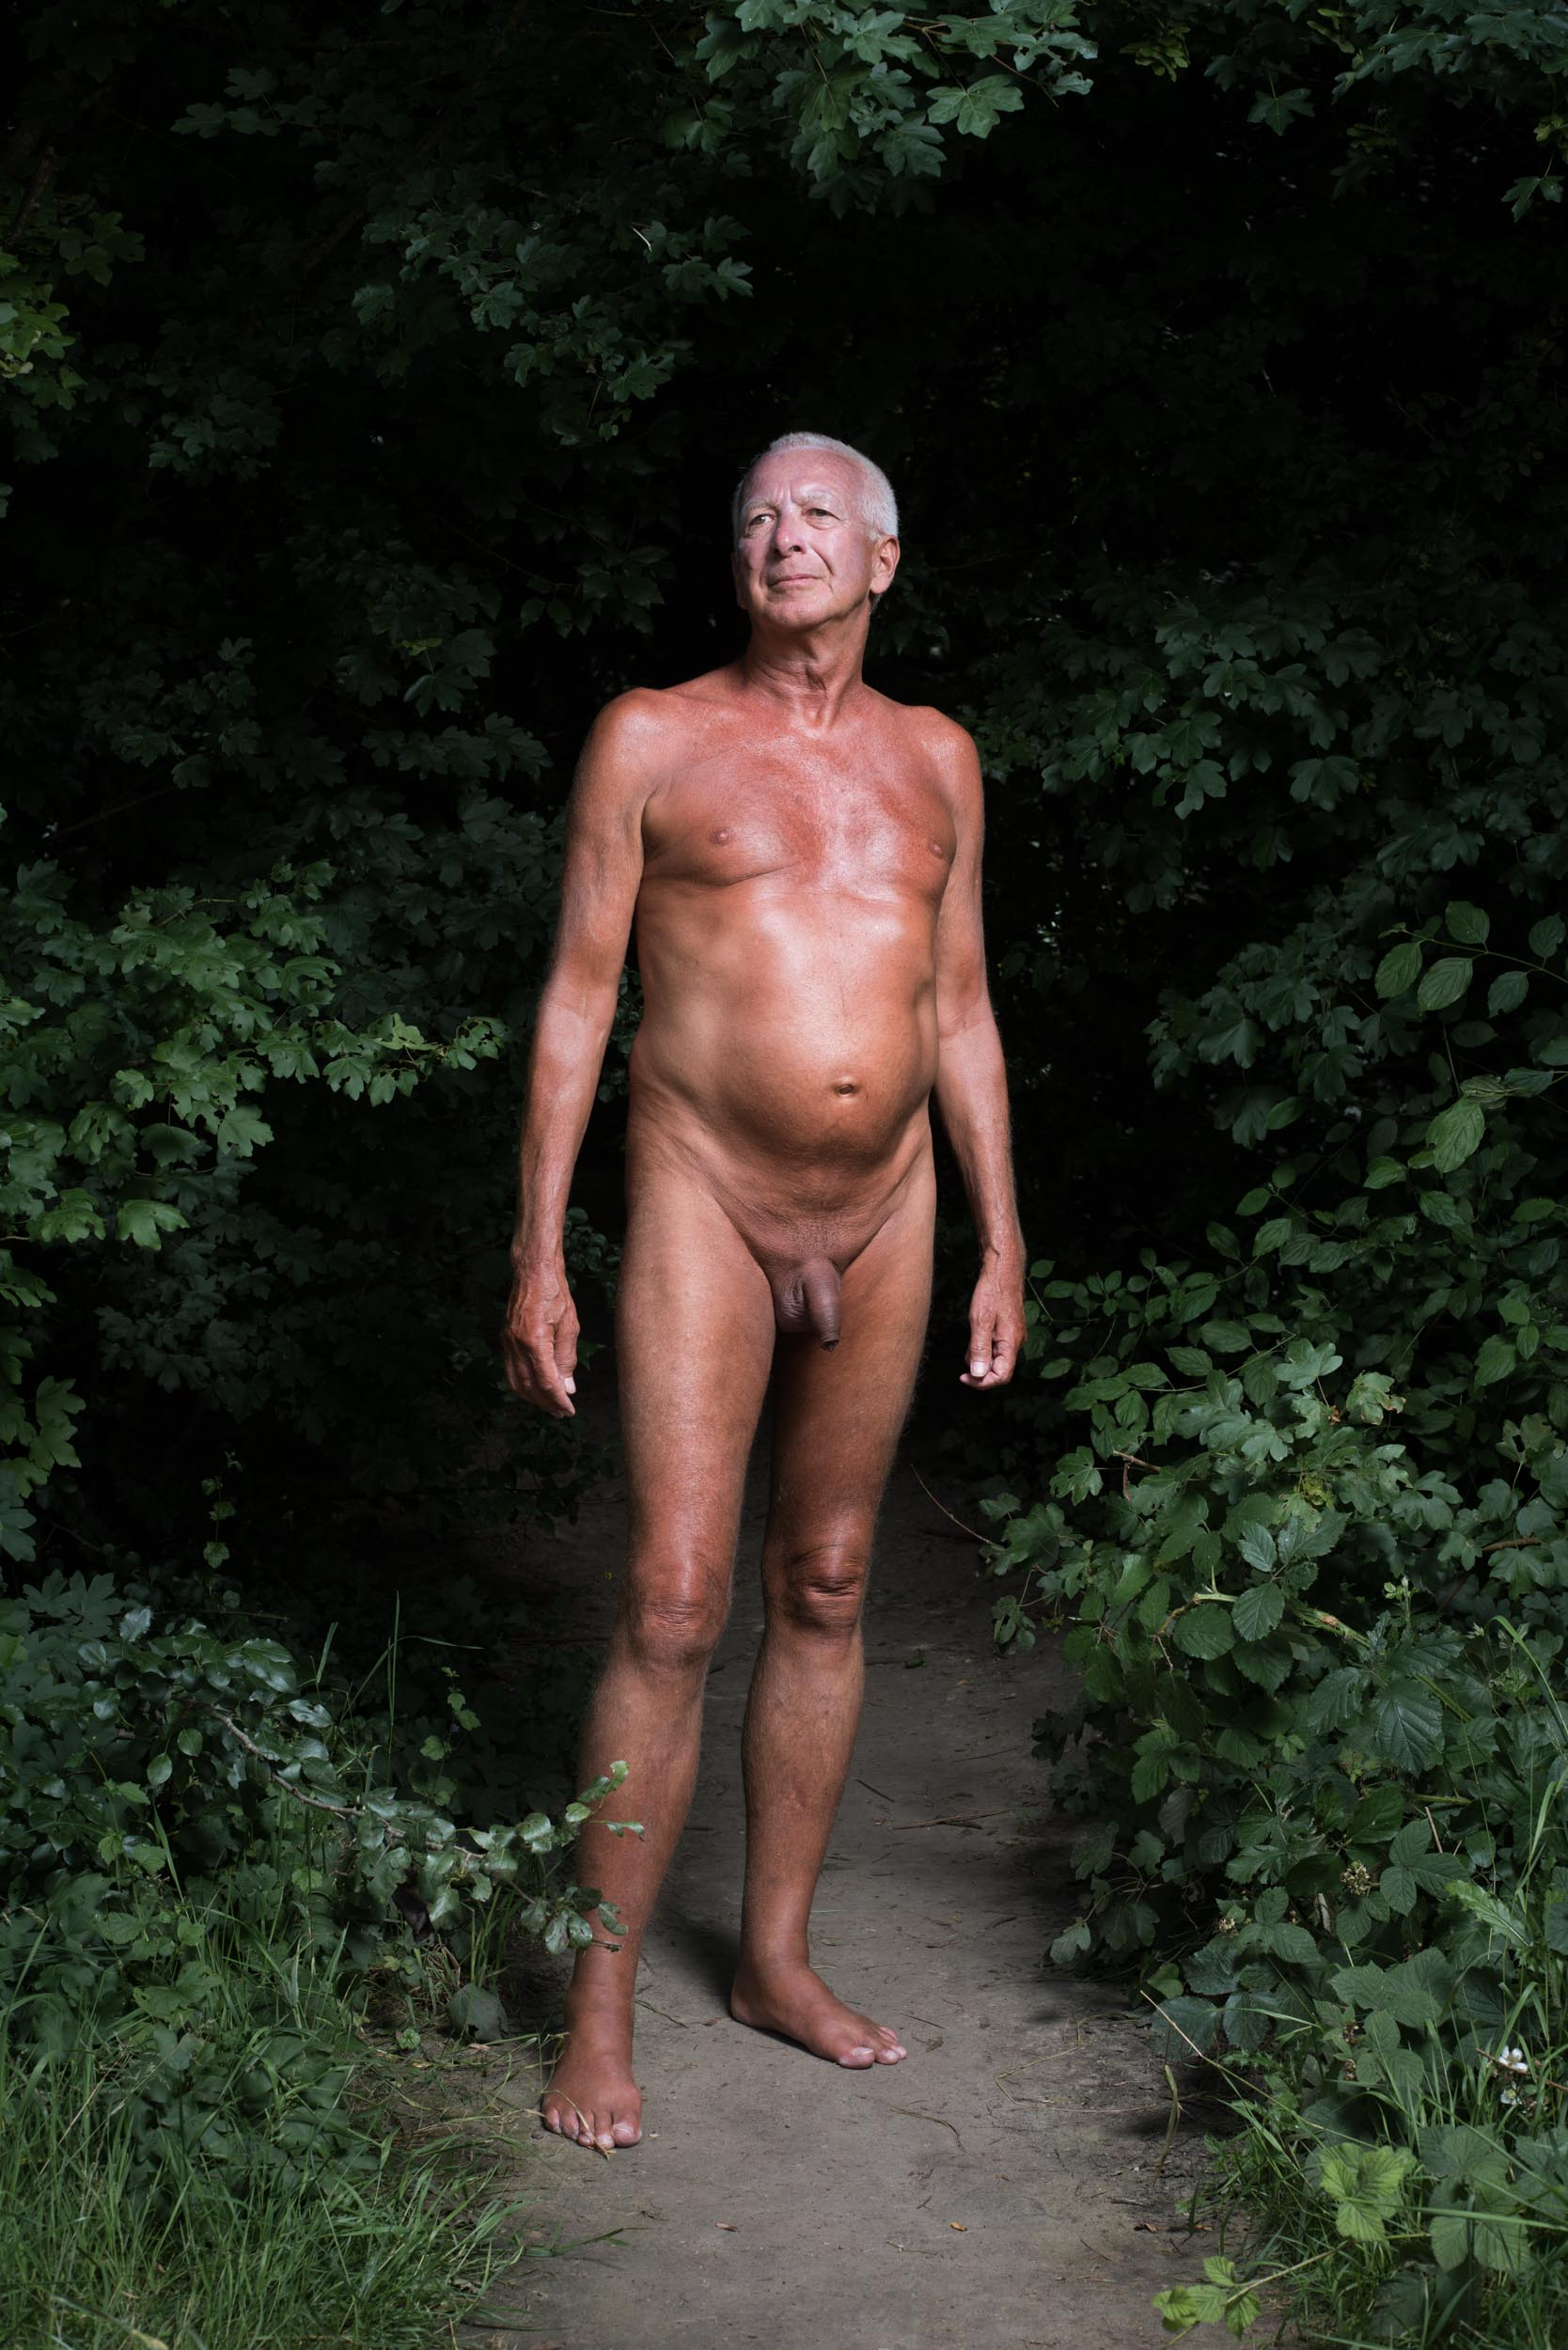 This was the second season of the espace naturiste, a clearing in the Bois de Vincennes in Paris where nudism is sanctioned.  I got naked and shot this series there in June.